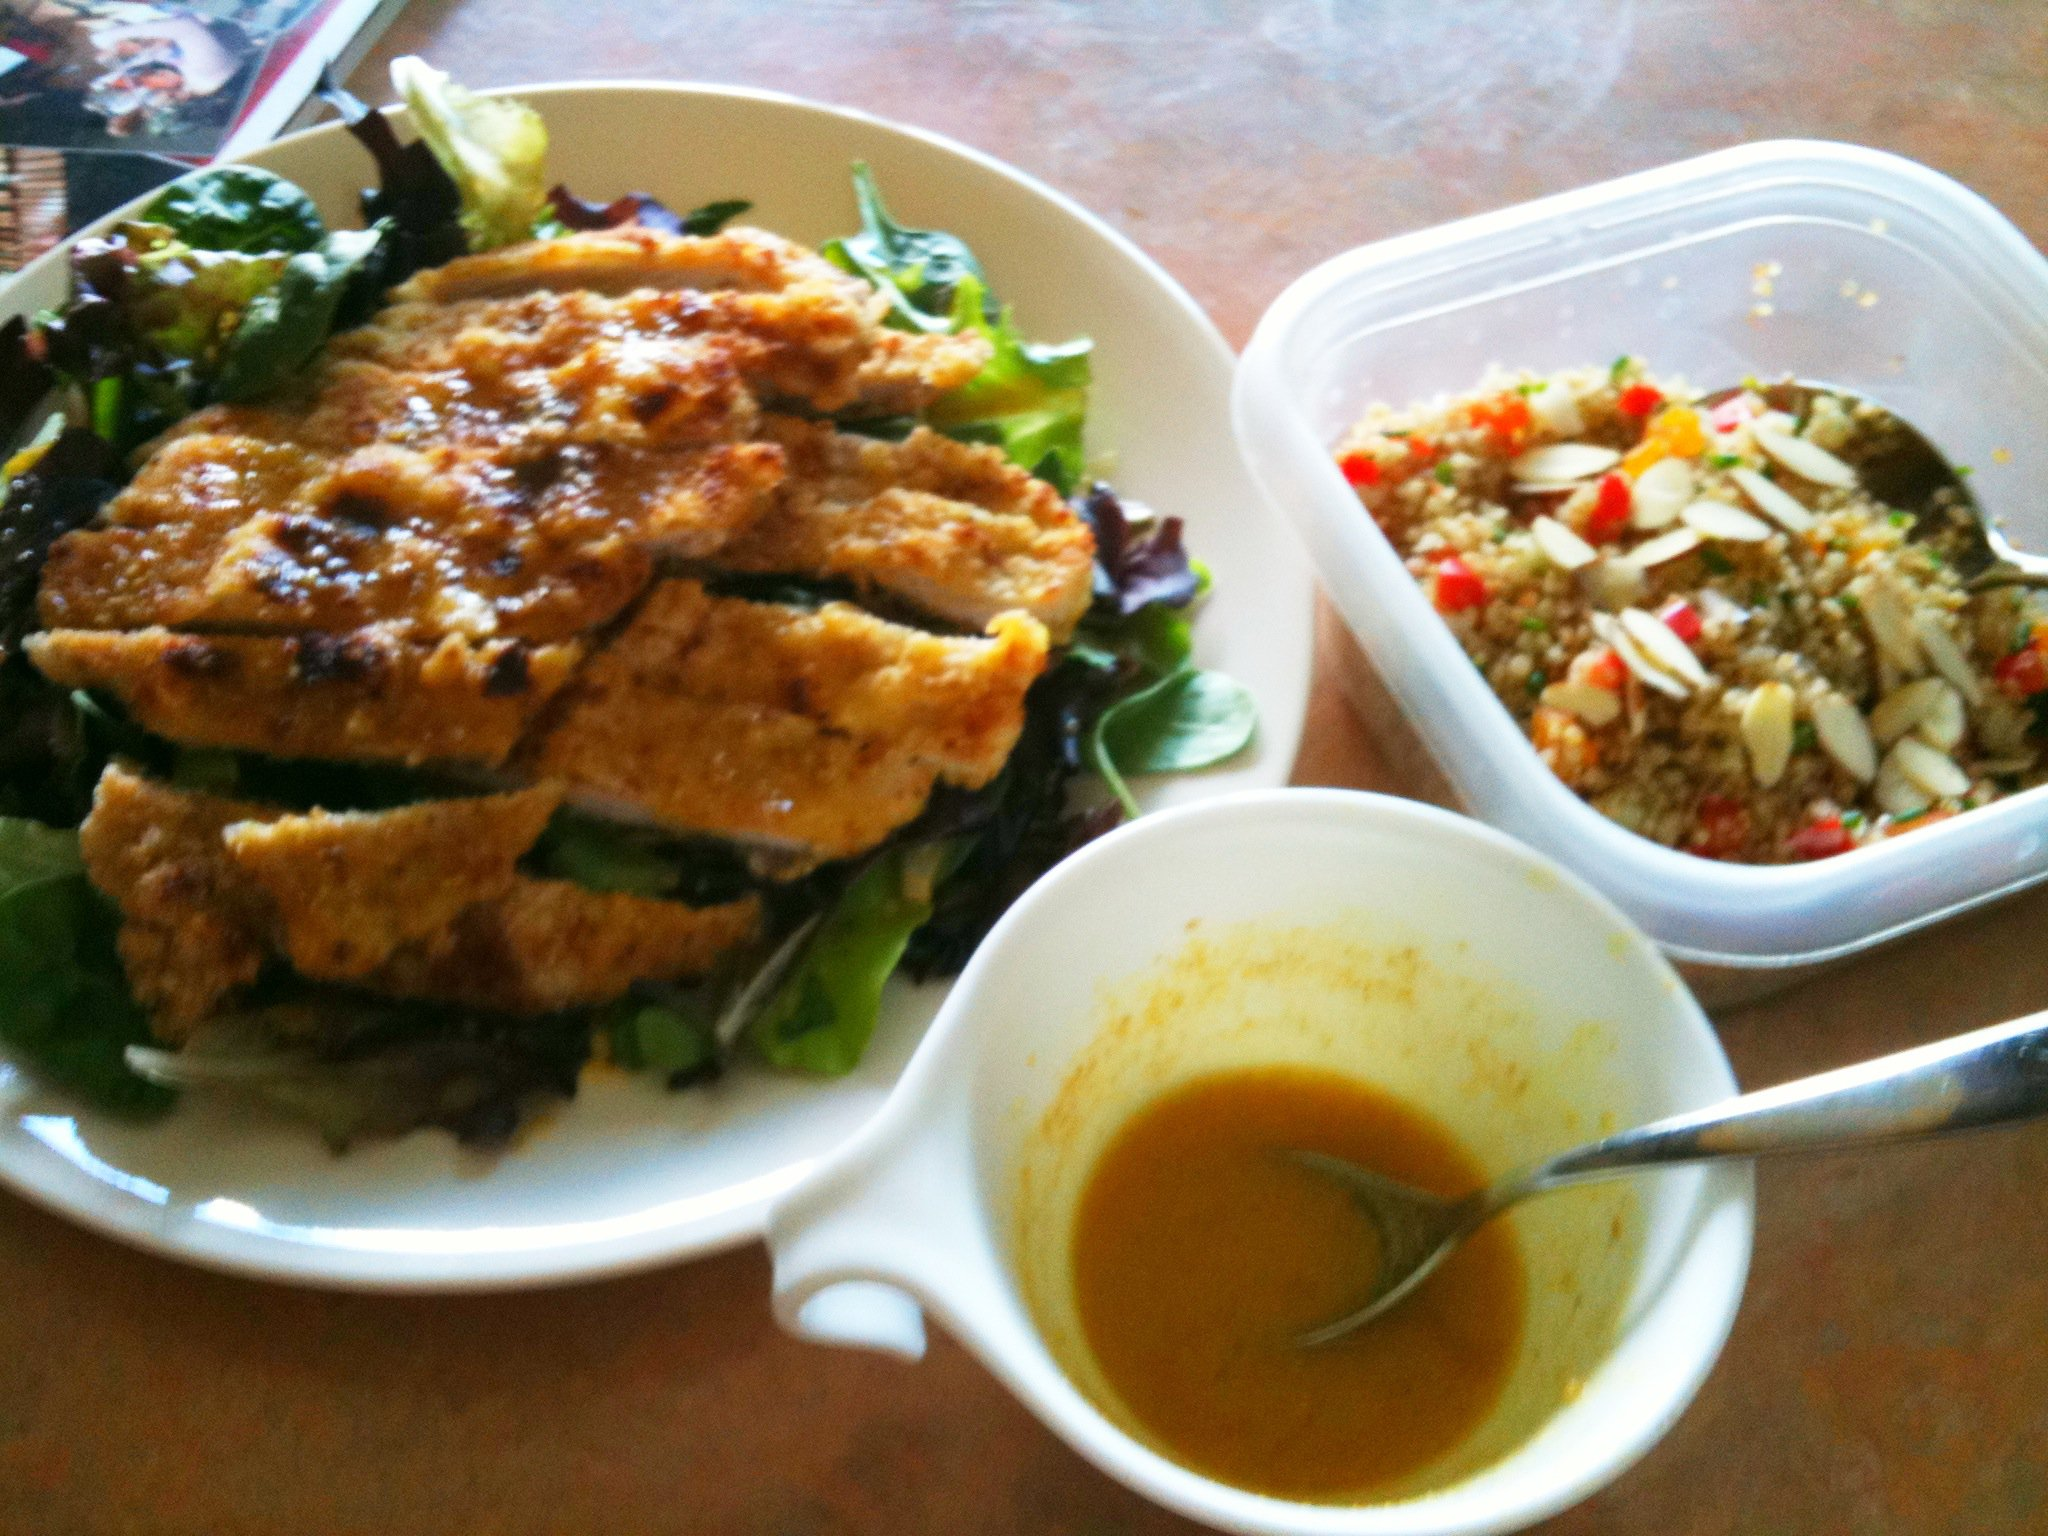 Breaded pork cutlet, quinoa salad and curry mustard orange dressing